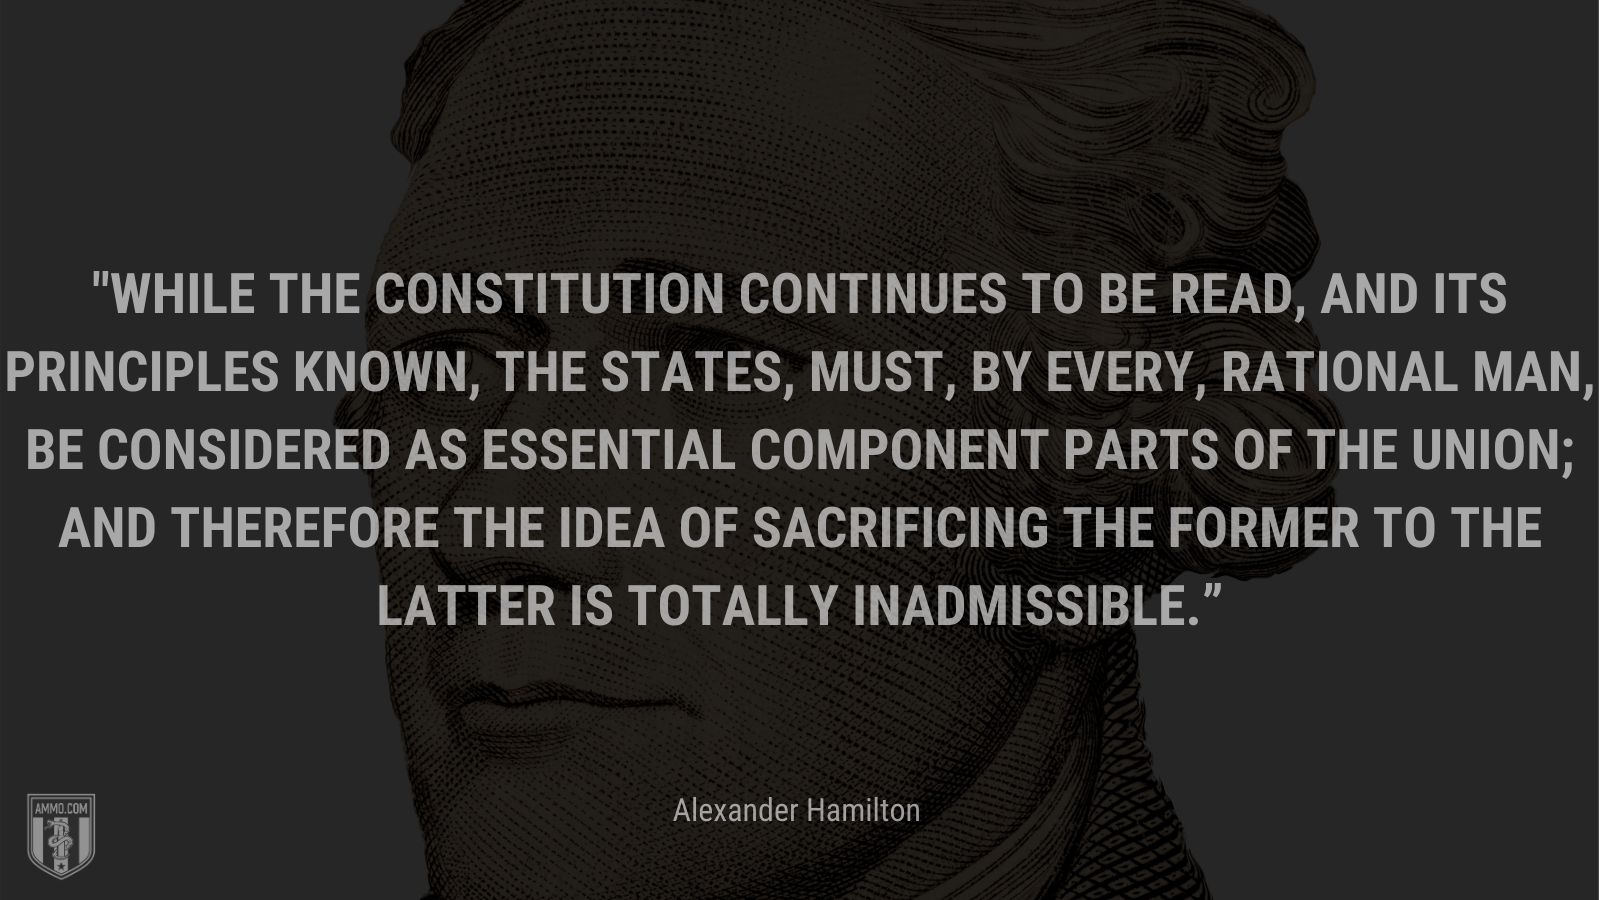 """""""While the constitution continues to be read, and its principles known, the states, must, by every, rational man, be considered as essential component parts of the union; and therefore the idea of sacrificing the former to the latter is totally inadmissible."""" - Alexander Hamilton"""